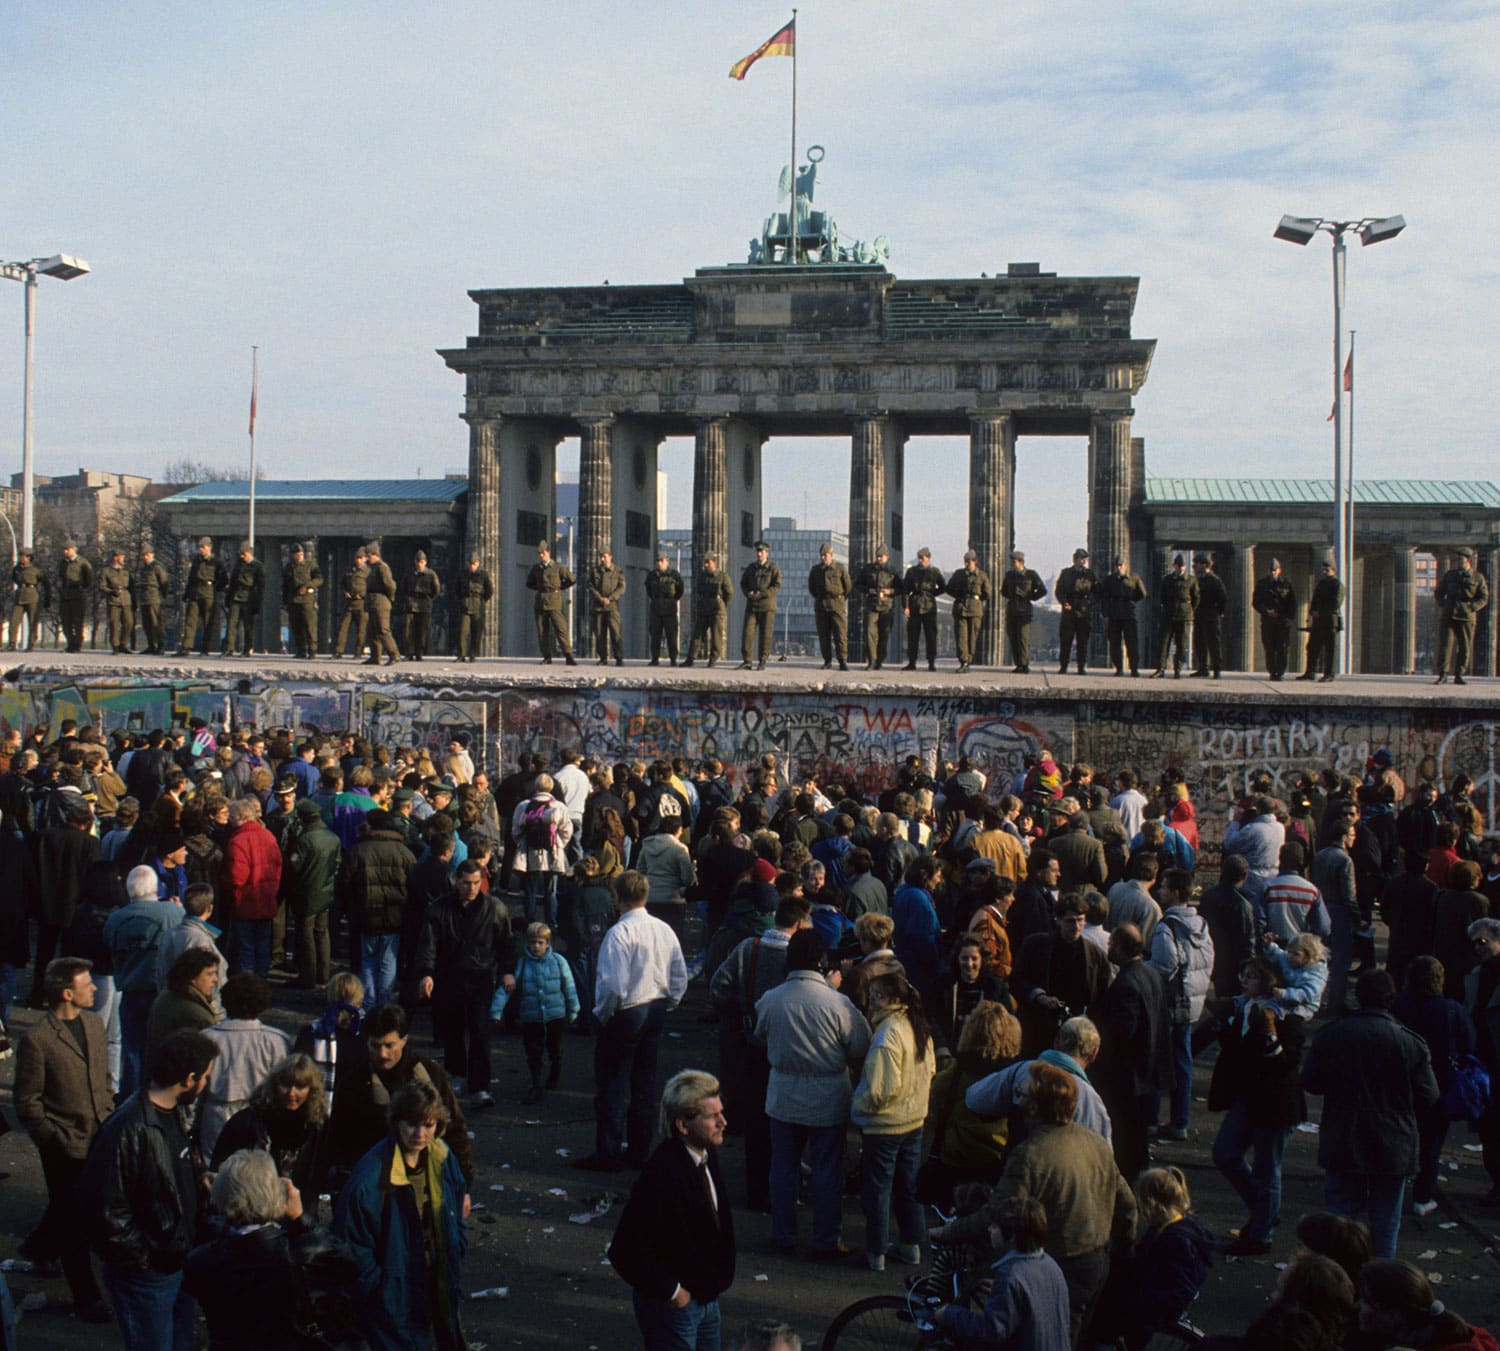 a personal account of the fall of the berlin wall in november of 1989 Margaret thatcher remarks on the berlin wall london, england, november 10, 1989, margaret thatcher margaret thatcher discusses the fall of the berlin wall.